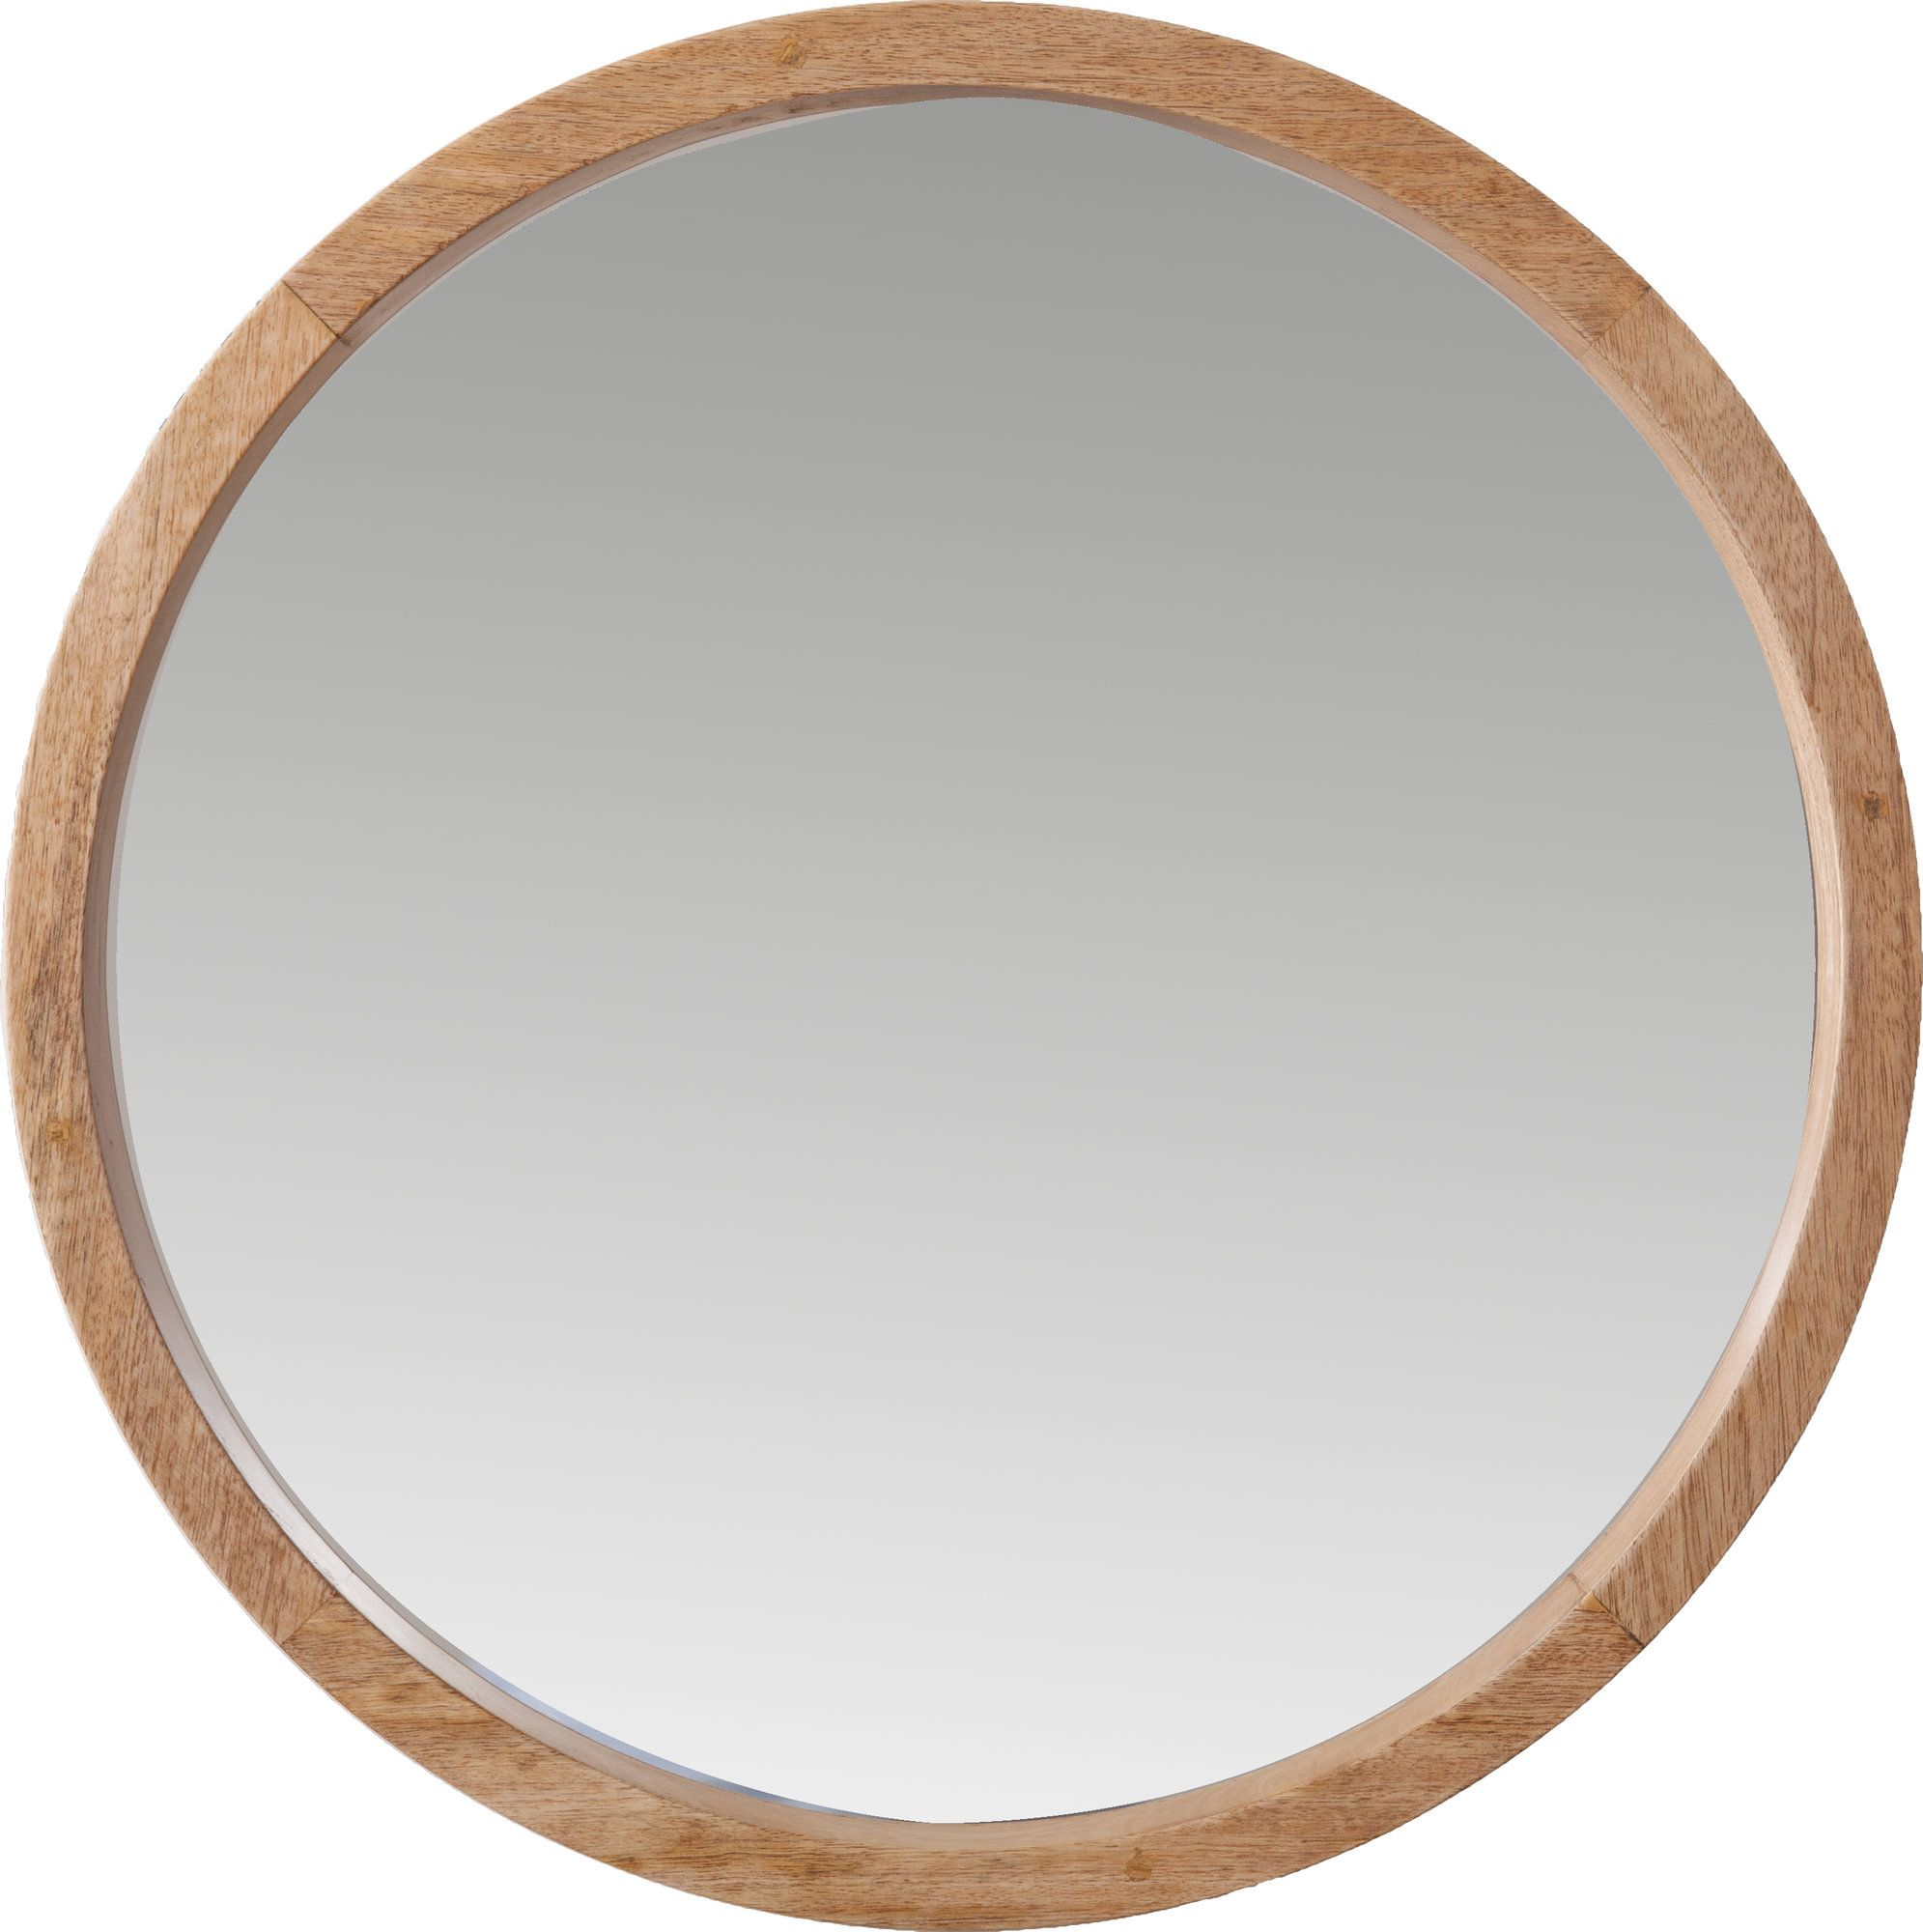 natural wood mirror decorative wood round natural wood mirror frame products in 2018 pinterest